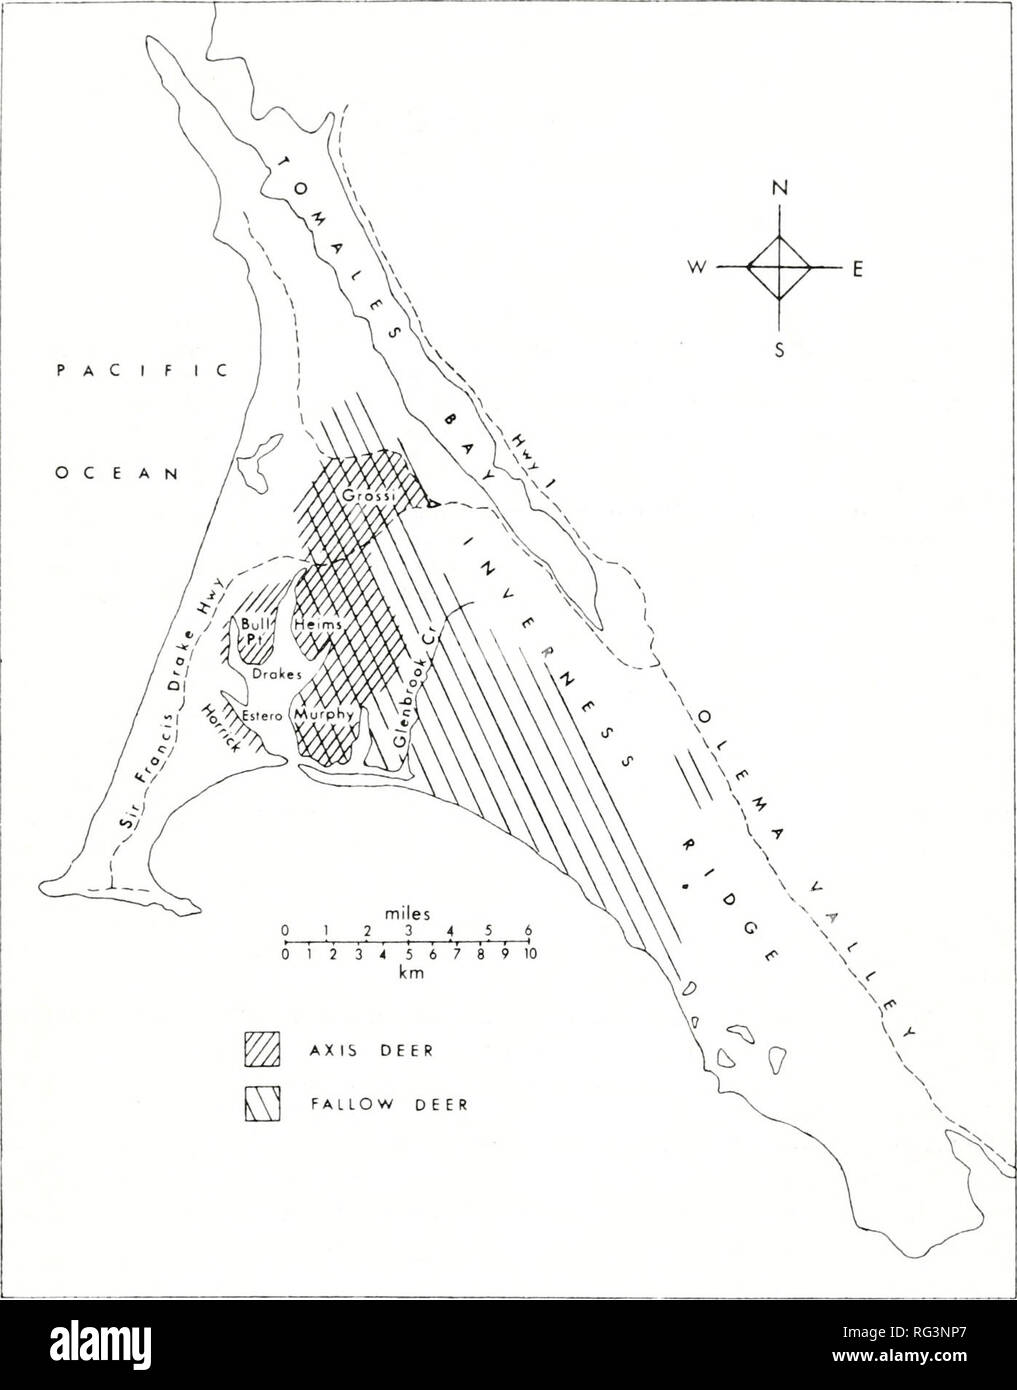 . California fish and game. Fisheries -- California; Game and game-birds -- California; Fishes -- California; Animal Population Groups; Pêches; Gibier; Poissons. EXOTIC DEER POPULATIONS AT POINT REYES 133. FIGURE 1. Ranges of the fallow and axis deer on Point Reyes National Seashore. Cattle grazing occurs in the western and northern part of the National Seashore; its eastern boundary coincides with that of the axis deer range. Names of locations refer to family names associated with ranches. Precipitation also occurs in the form of advection fog, particularly in summer. This fog, as well as fr Stock Photo